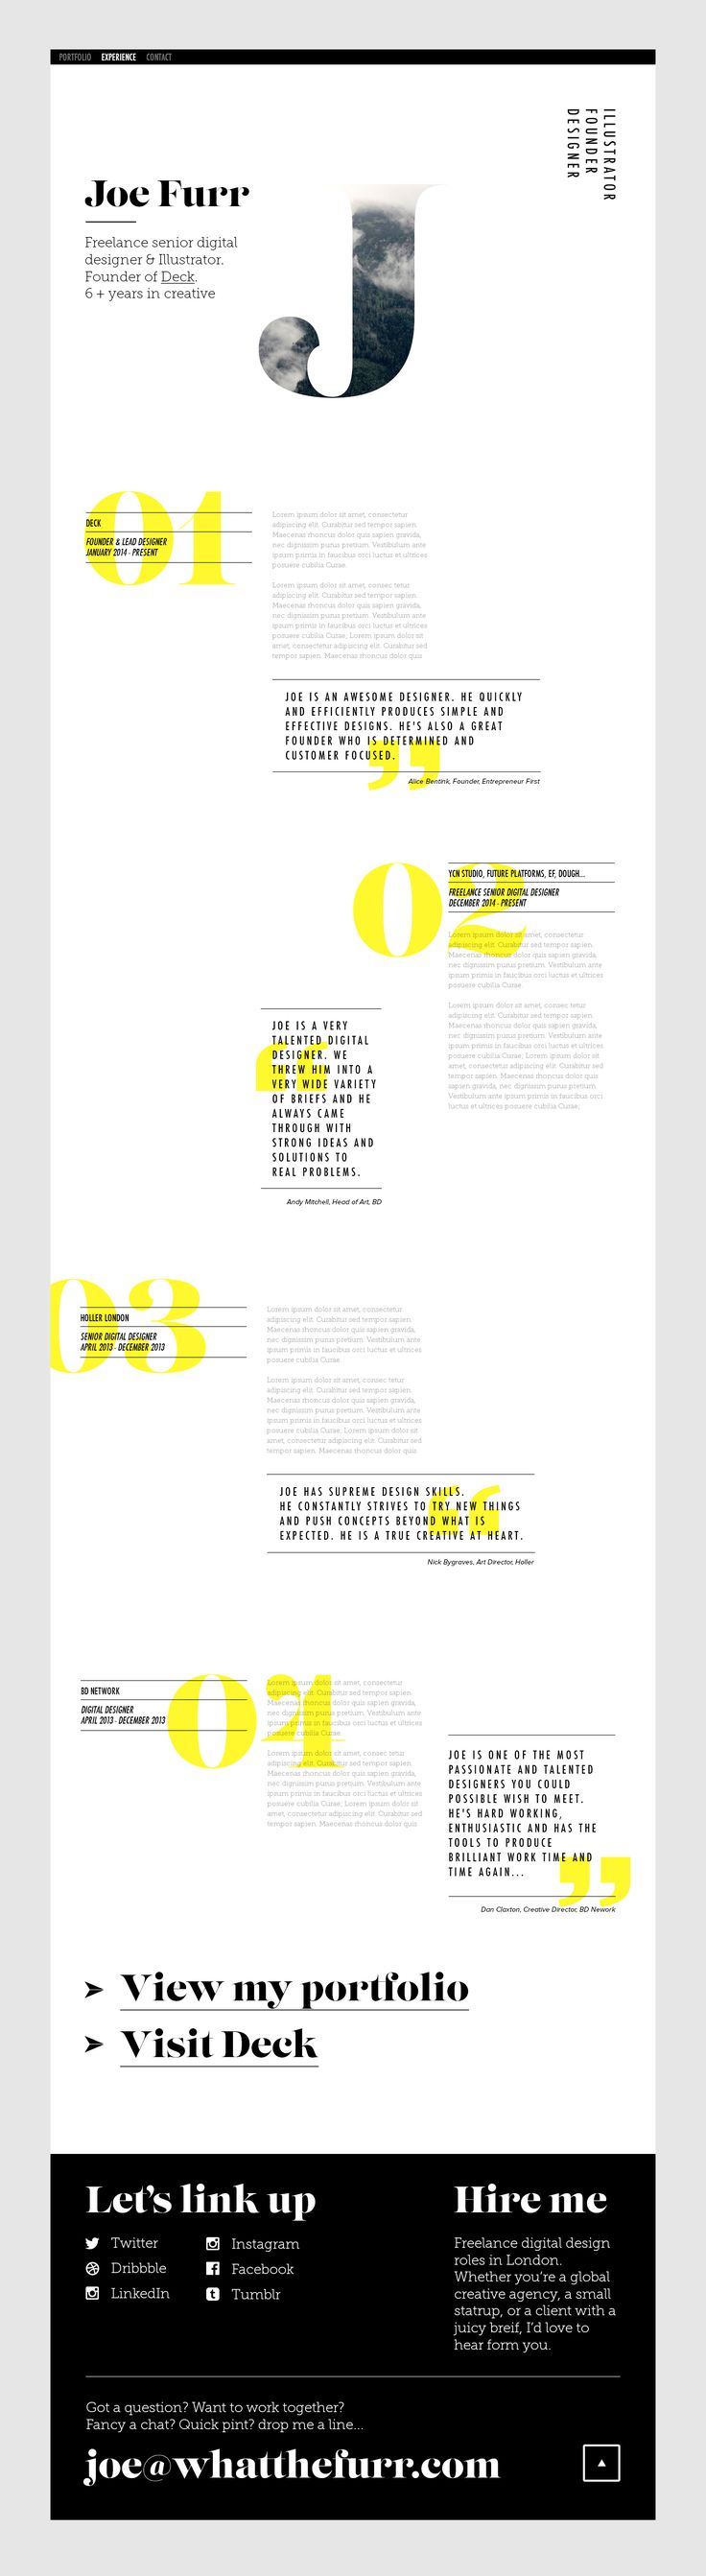 great use of typography layout for web personal project by joey furr https - Web Design Project Ideas